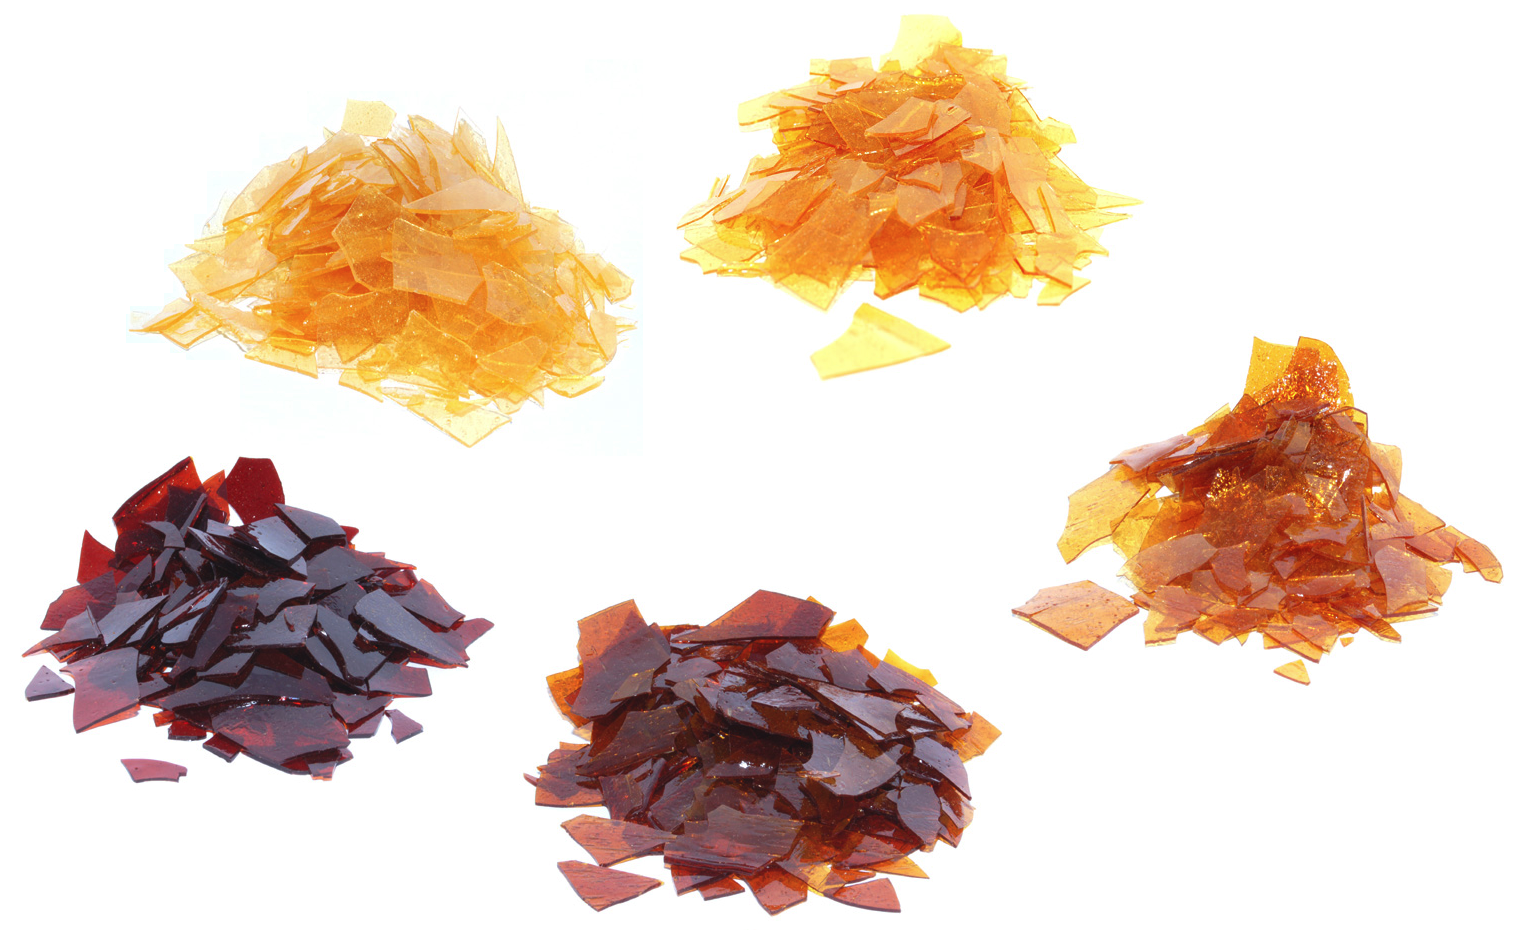 These are varieties of shellac used to make jelly beans.